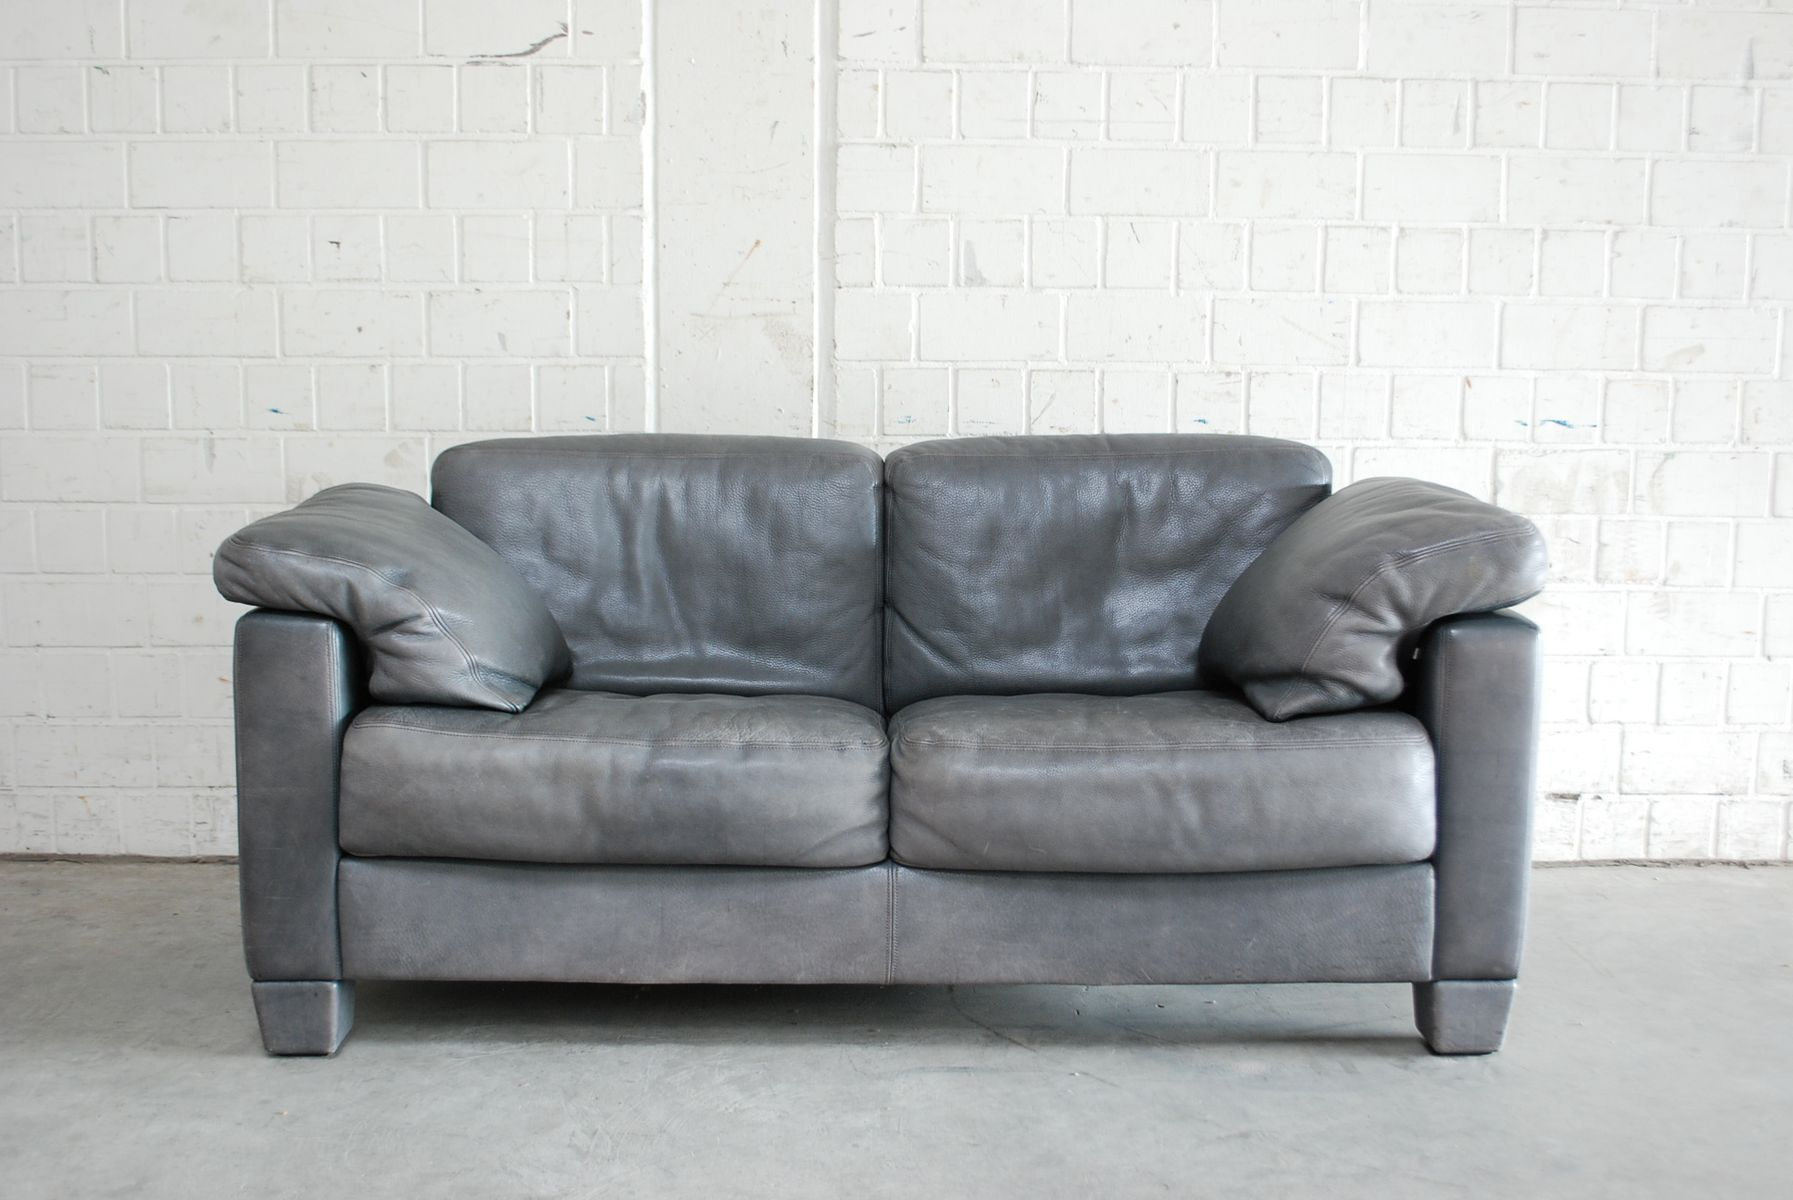 Beau Swiss DS 17 Grey Leather Sofa From De Sede, 1980s